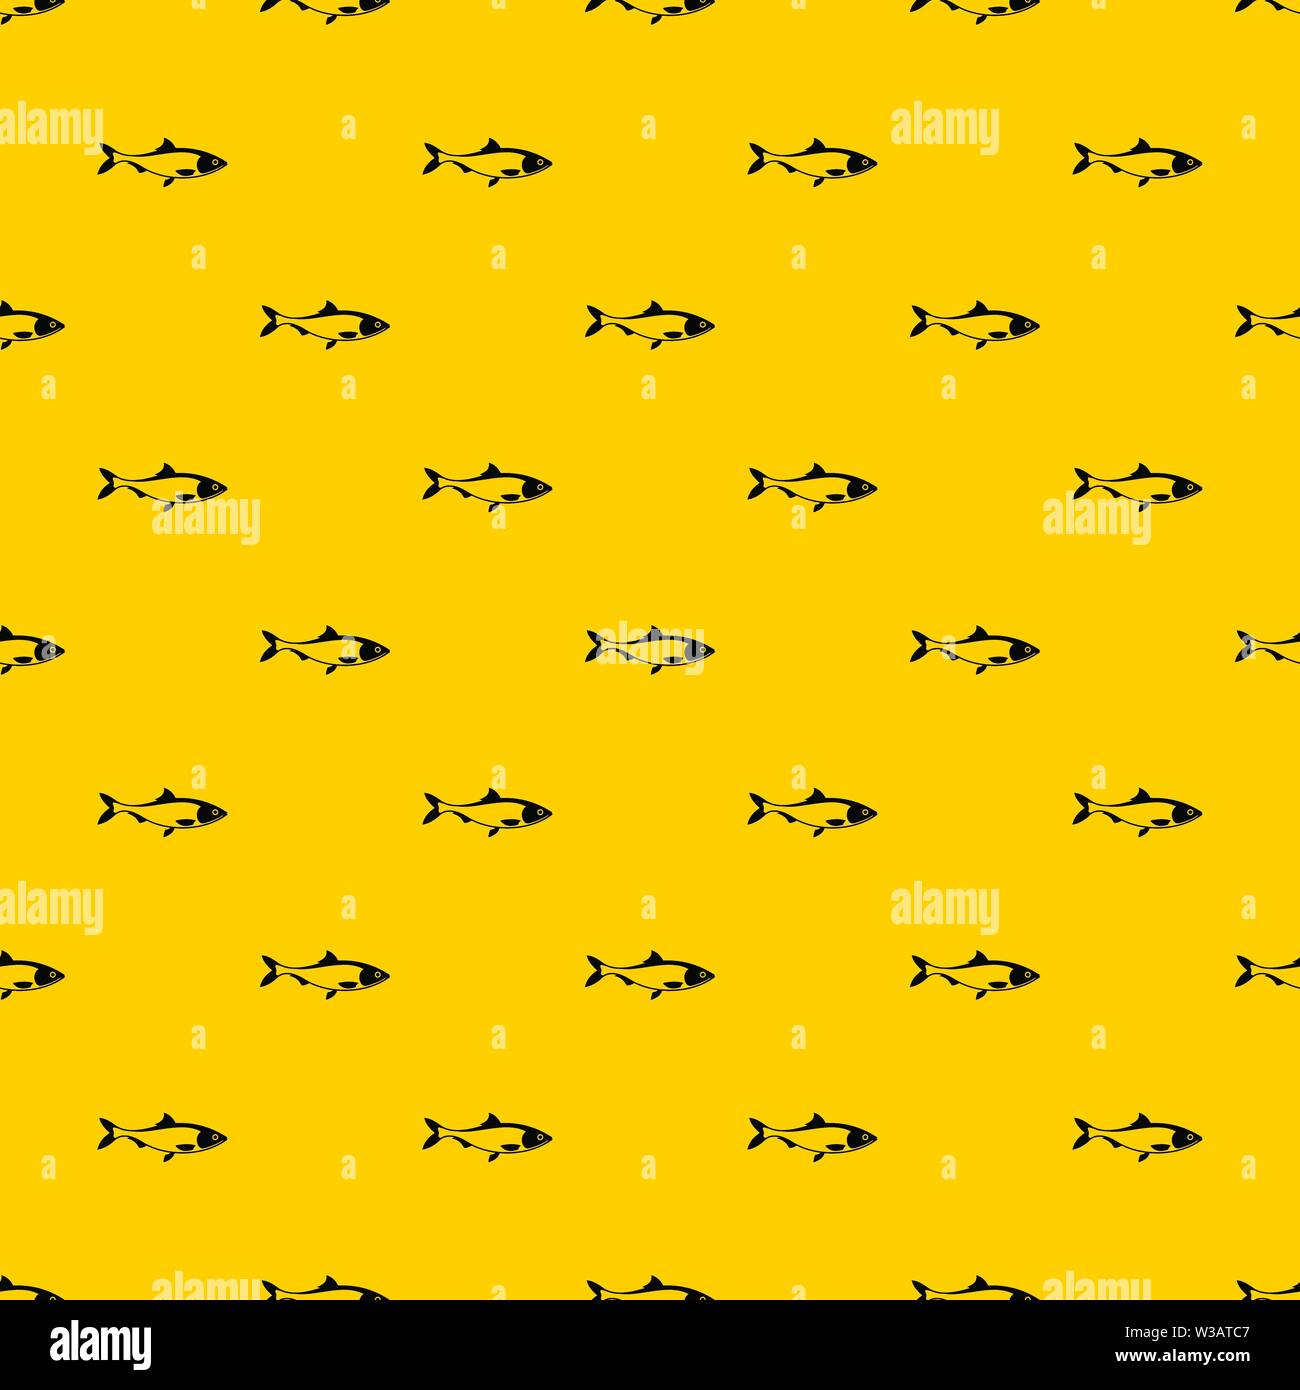 Fish pattern vector - Stock Image